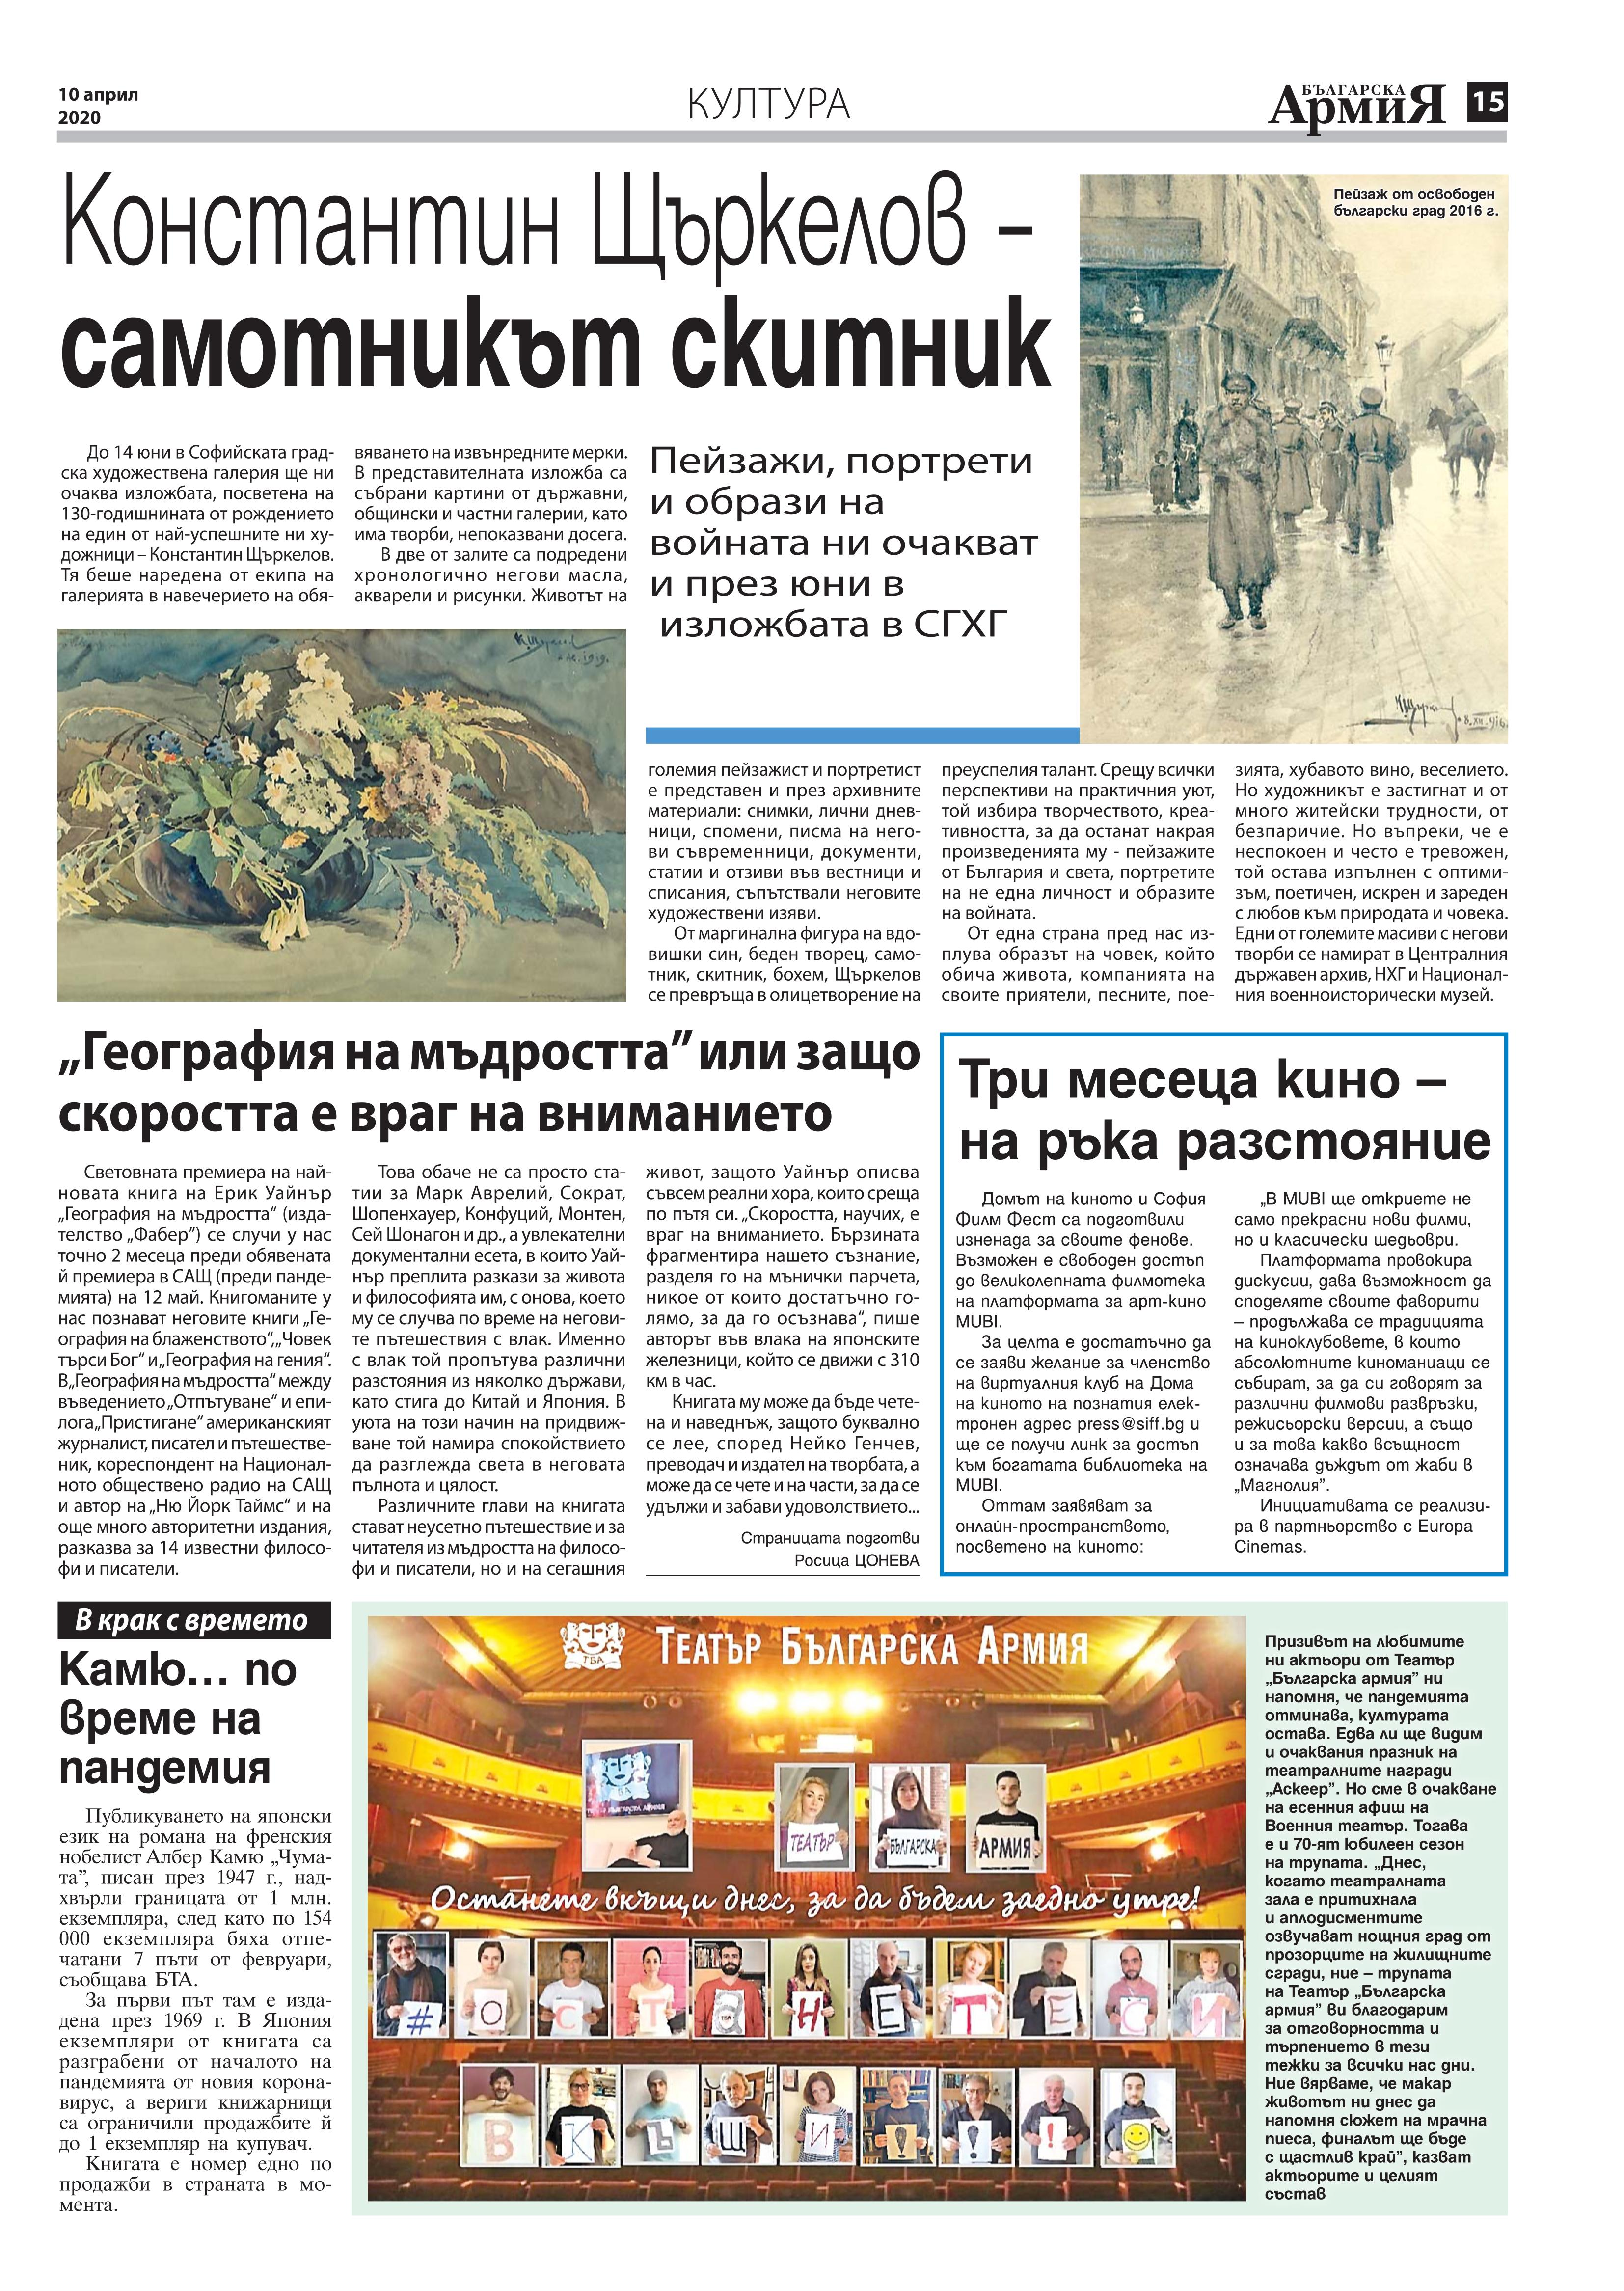 https://armymedia.bg/wp-content/uploads/2015/06/15.page1_-134.jpg